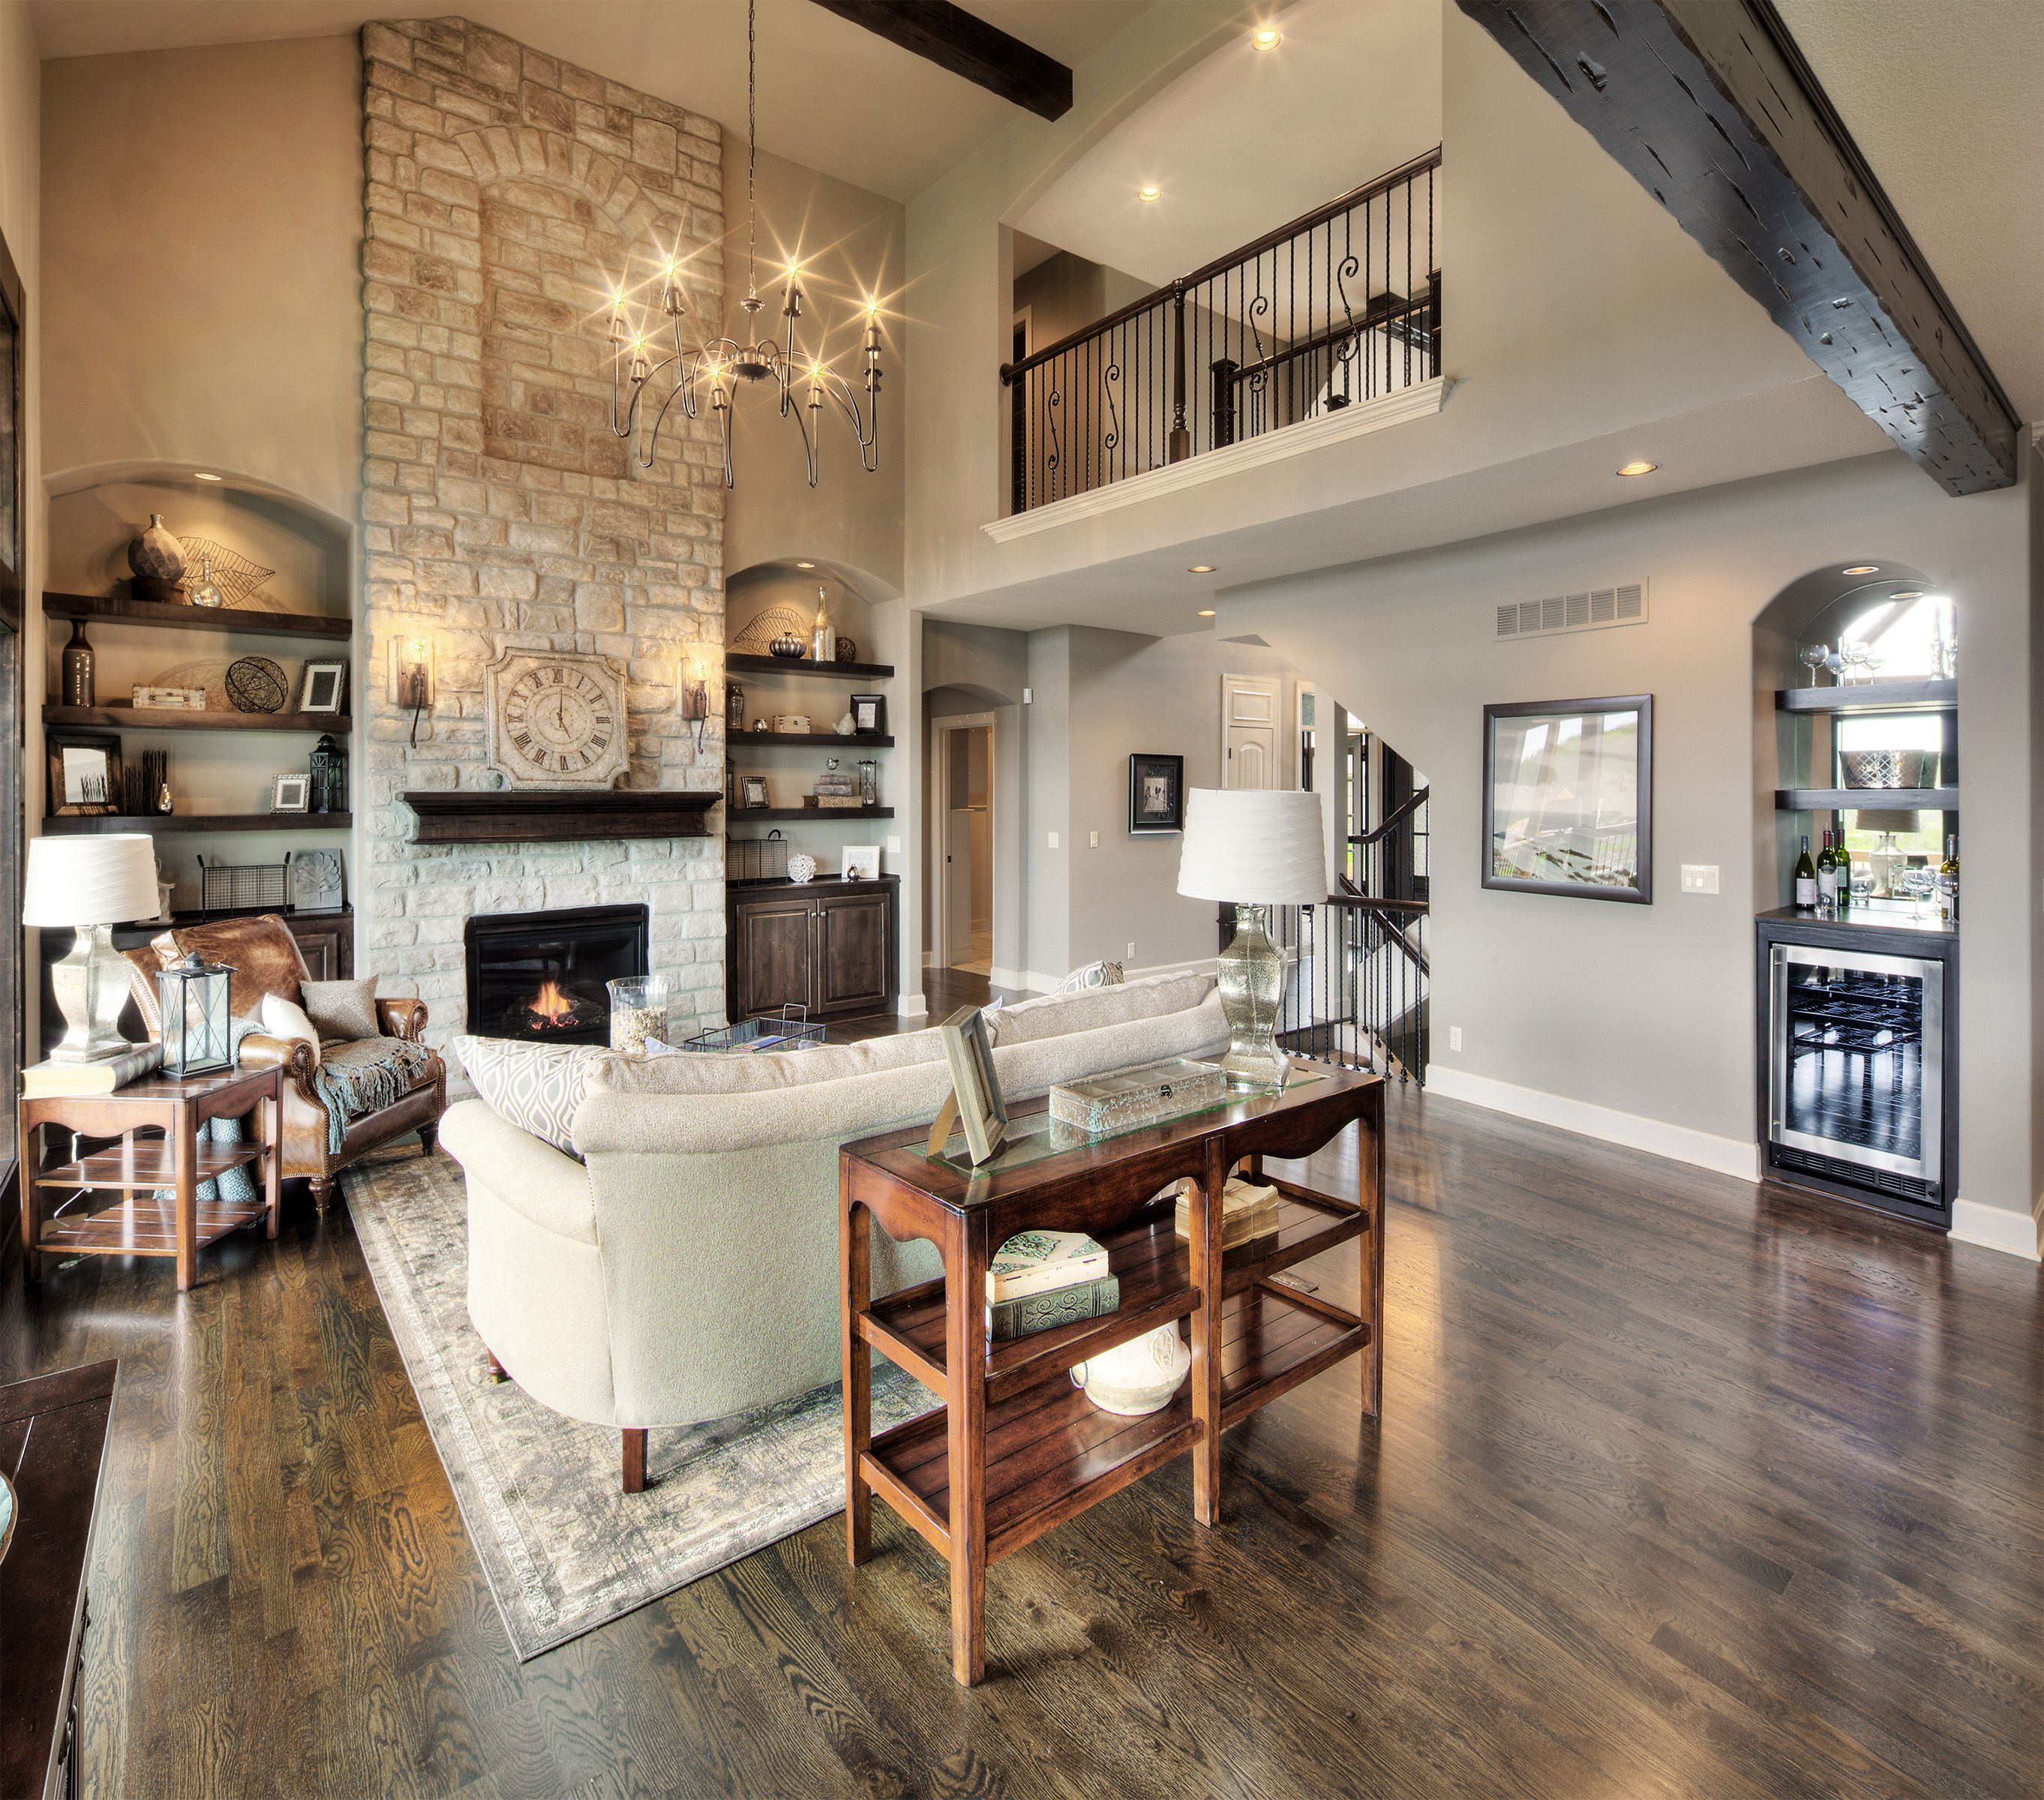 Pin By Danielle Renee On Model Homes House Plan With Loft